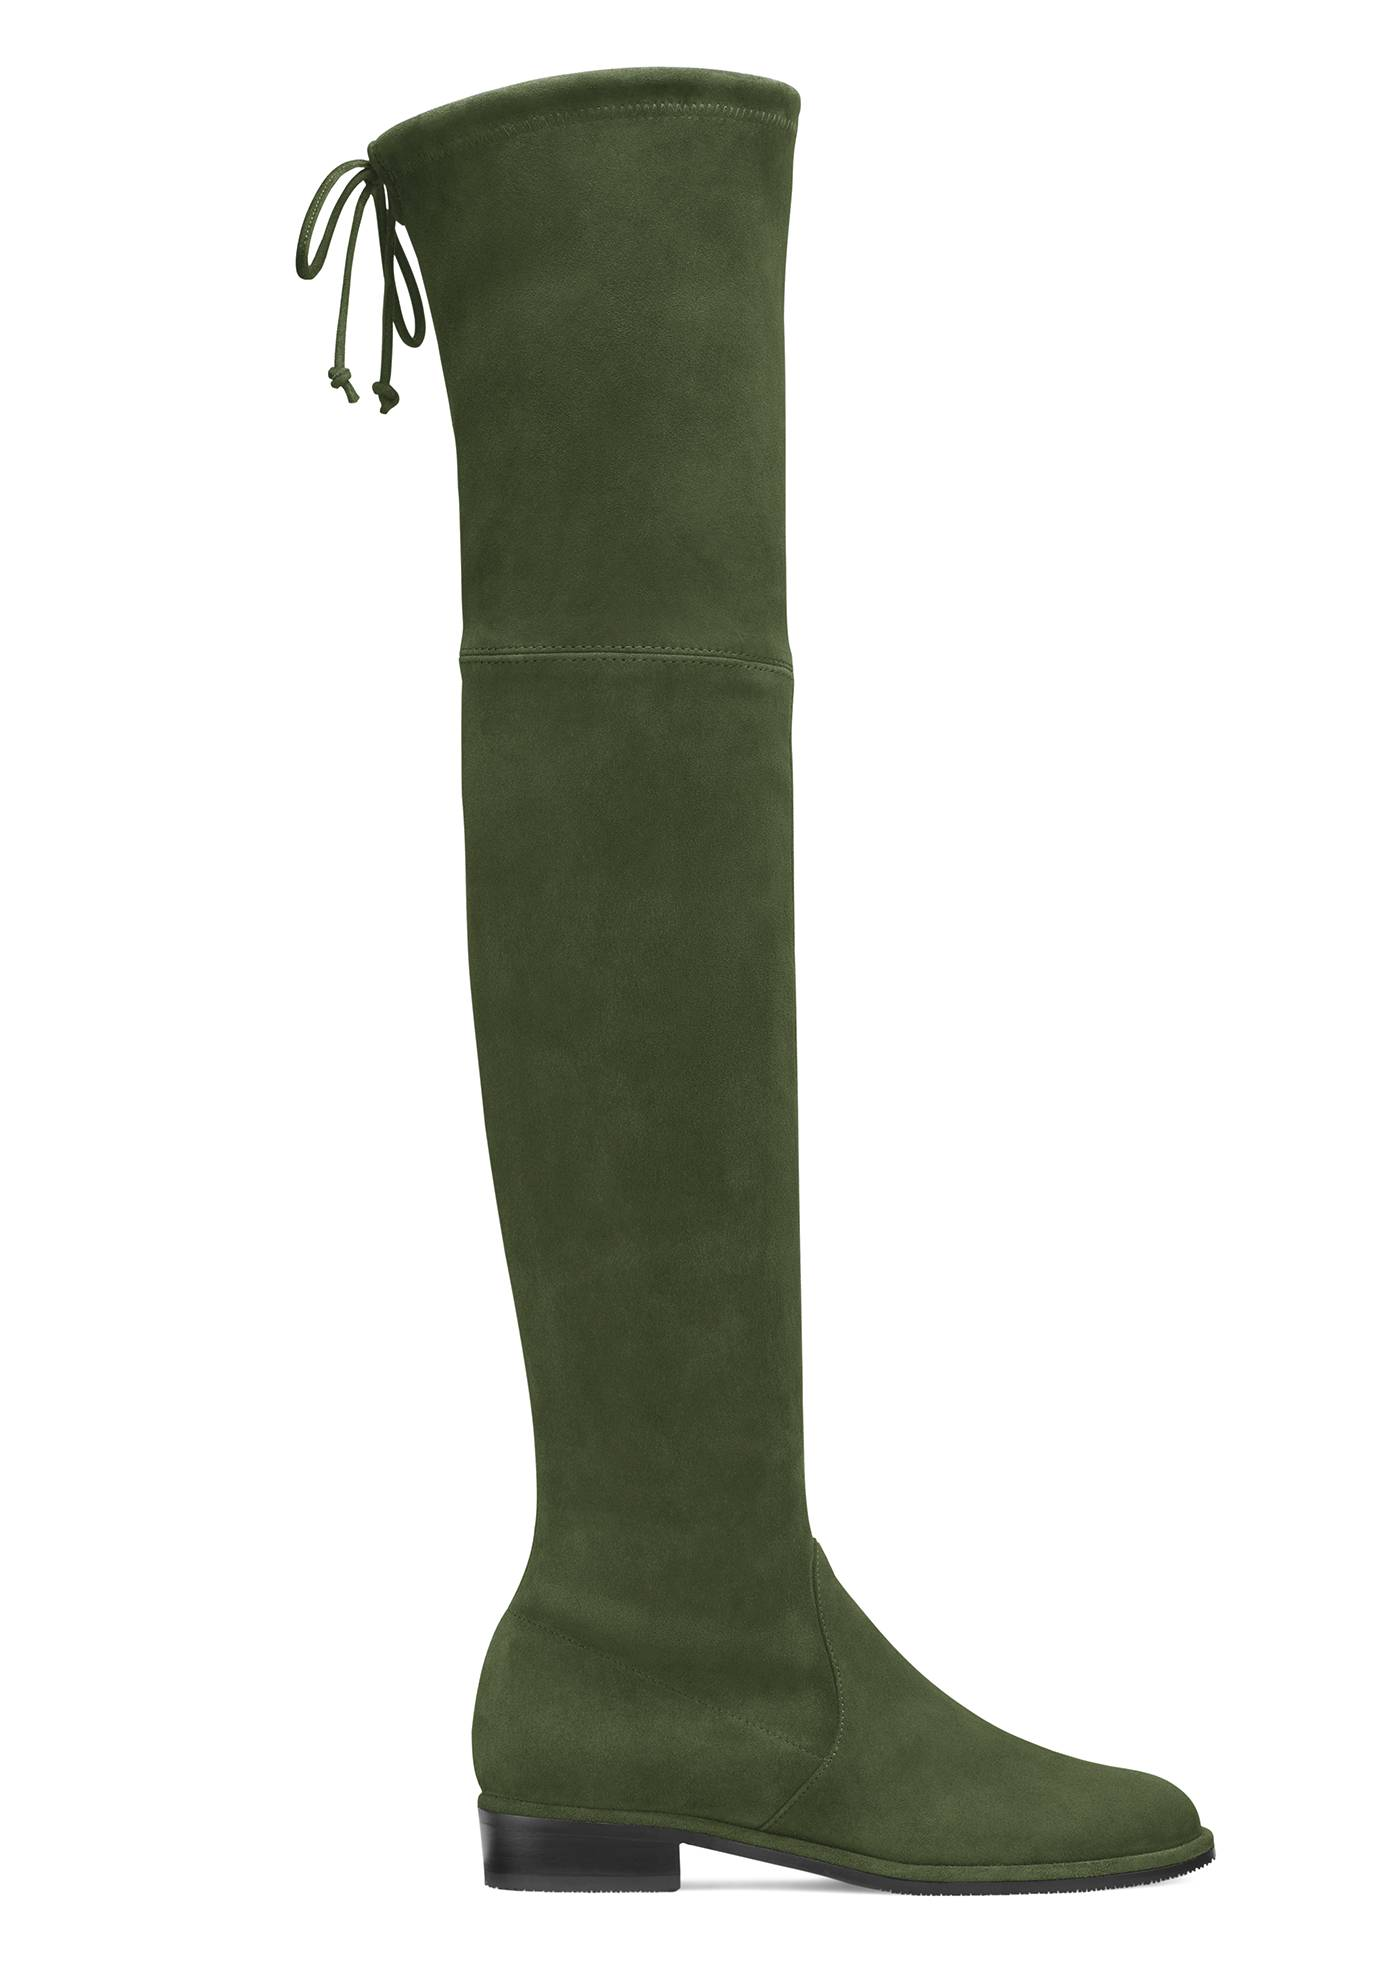 wtuart weitzman over the knee boot